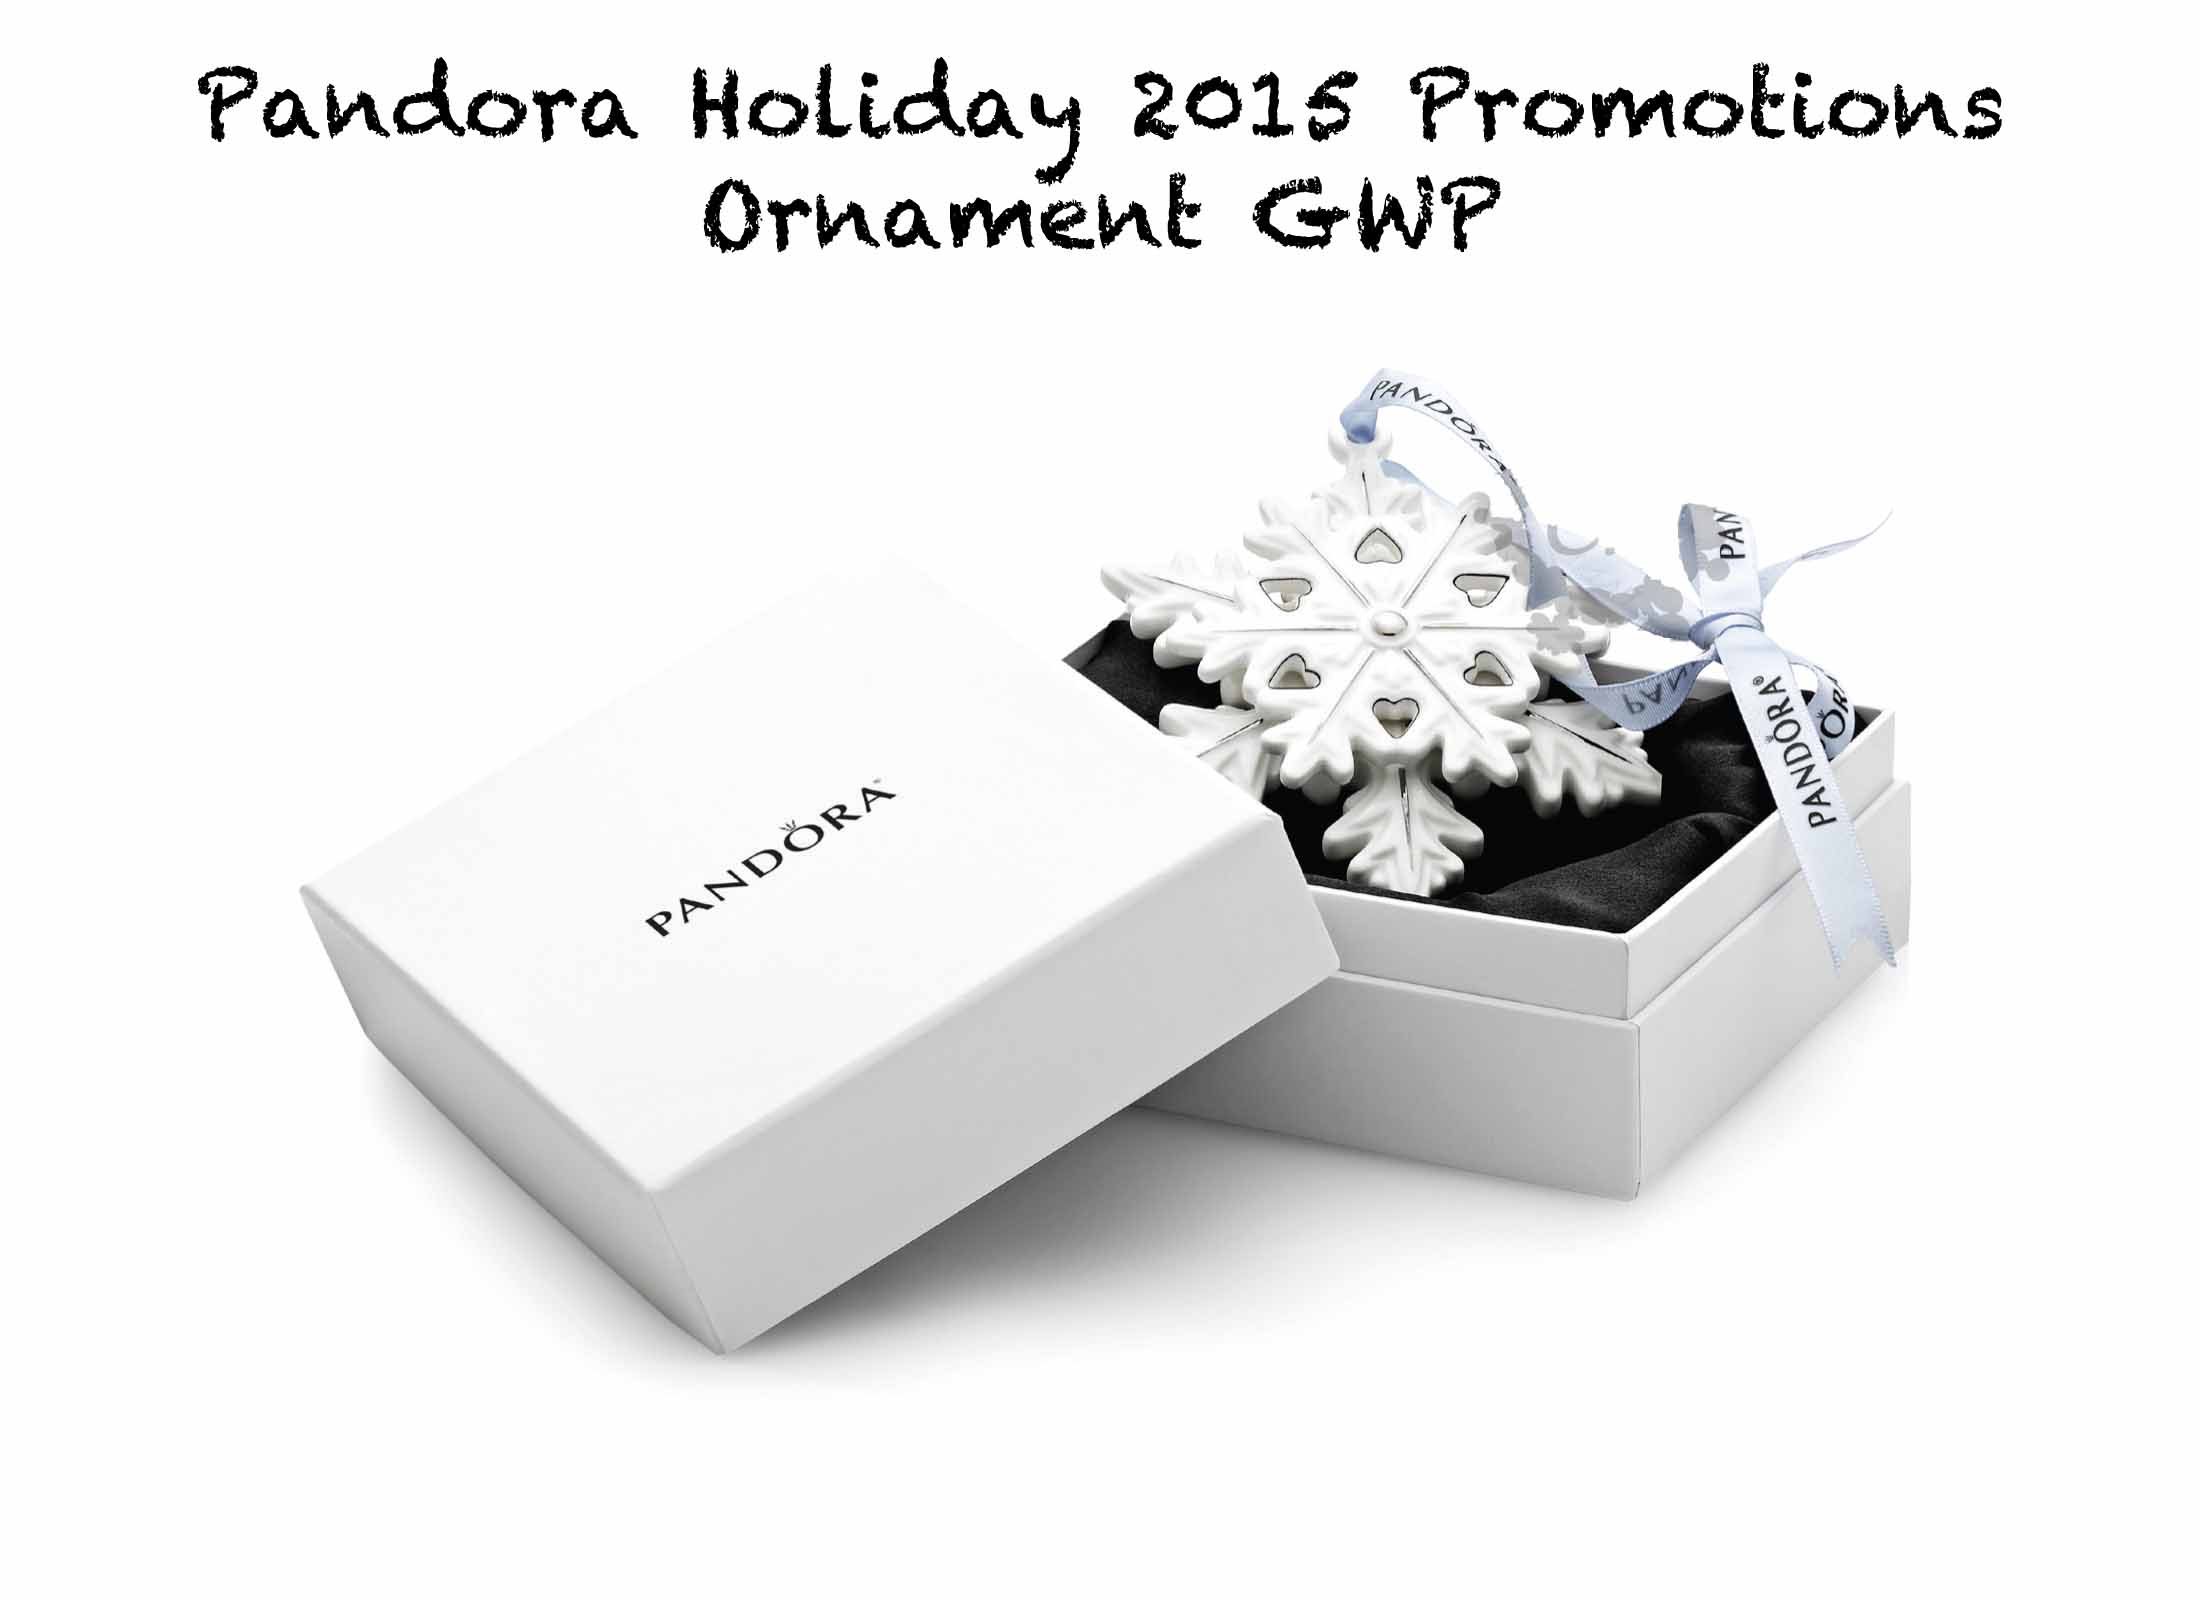 pandora-holiday-2015-ornament-promotion copy